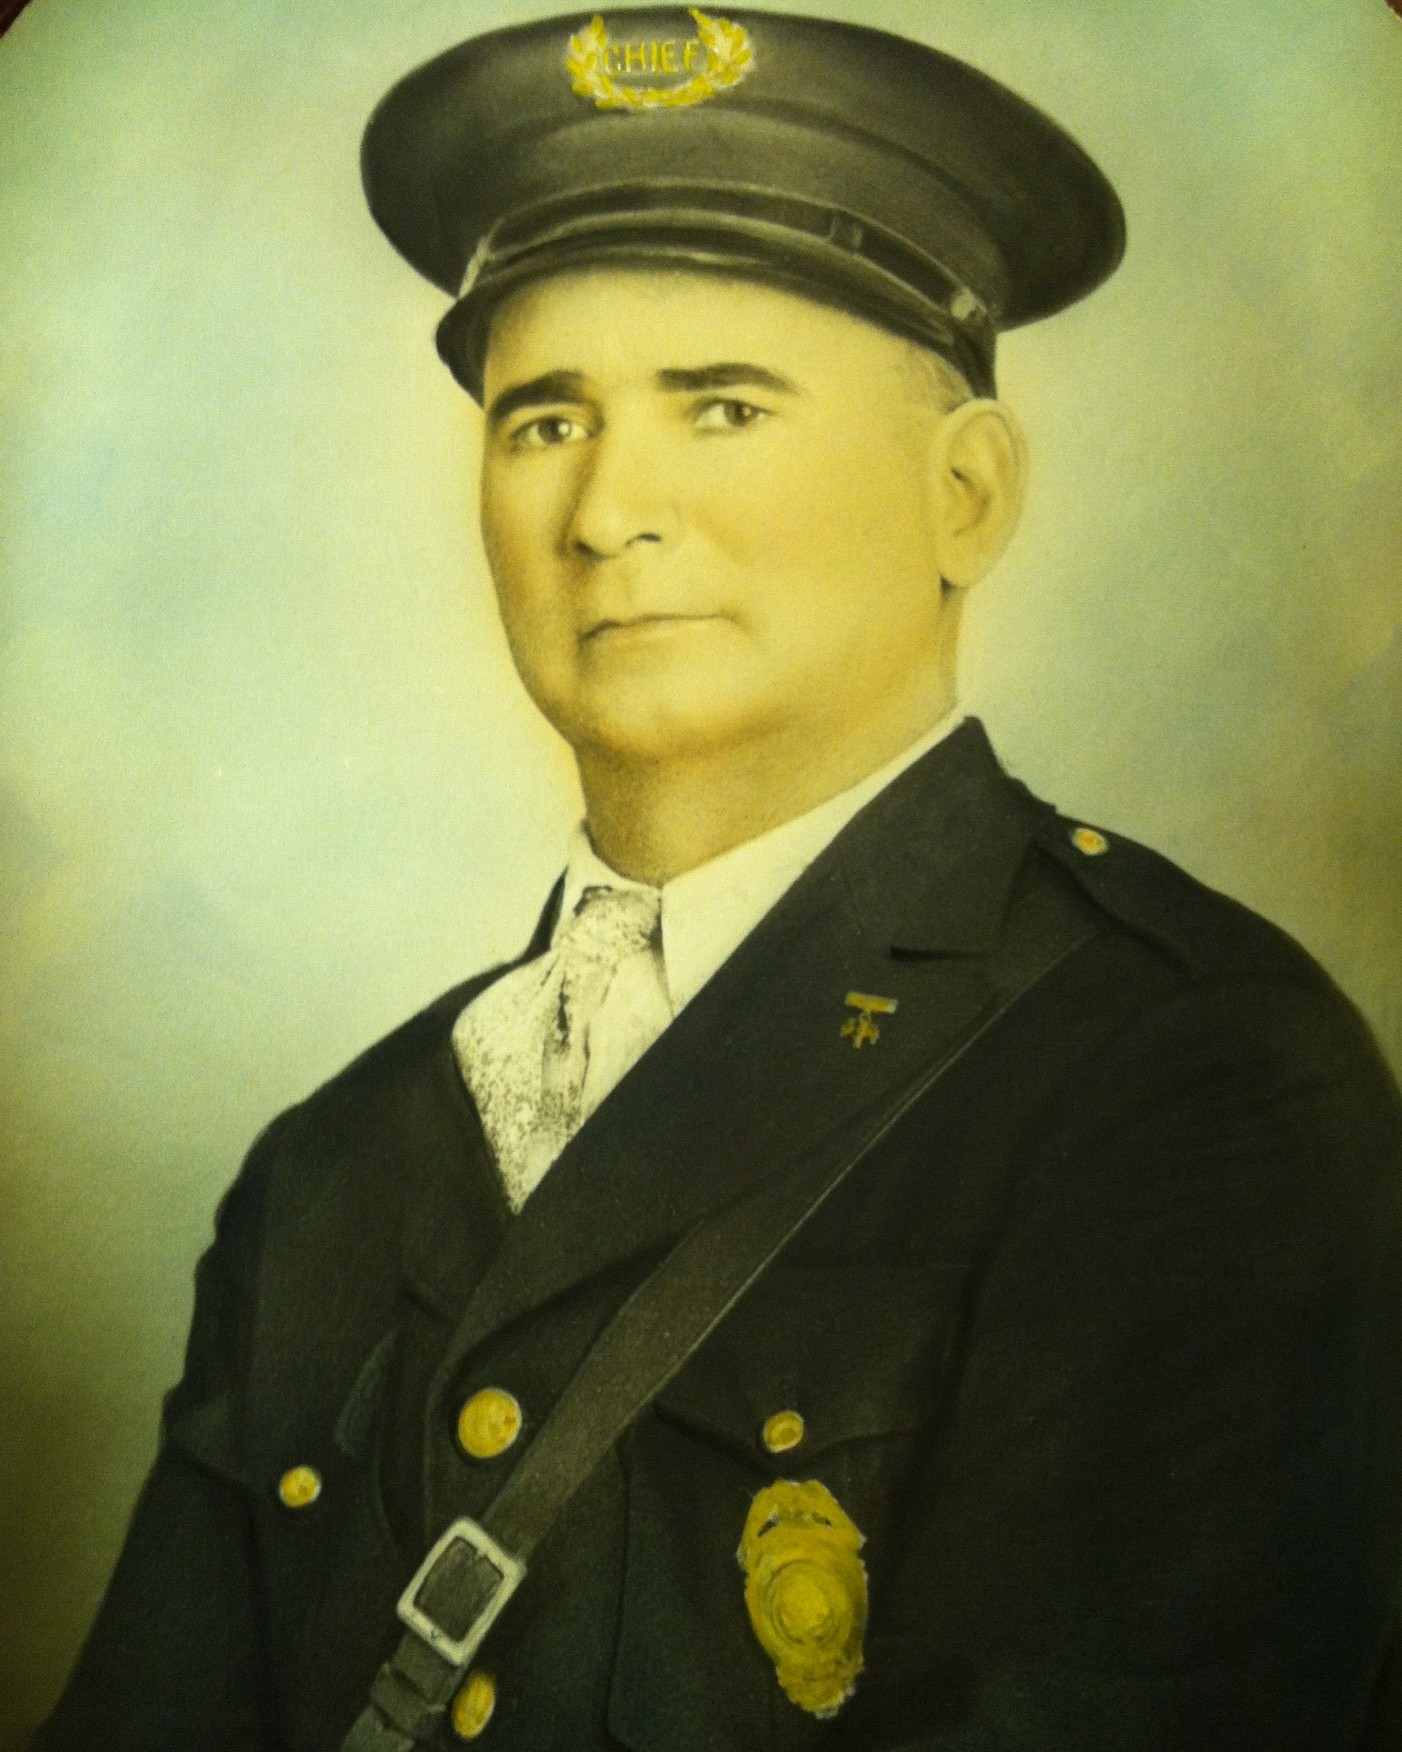 City Marshal Apolonio Pino | Santa Fe Police Department, New Mexico